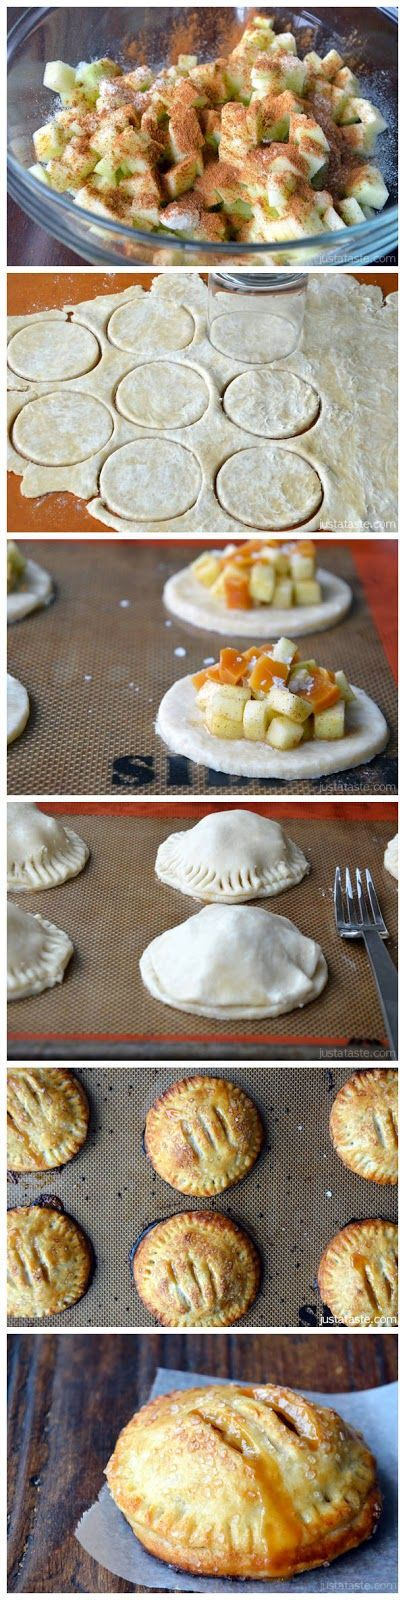 Salted Caramel Apple Hand Pies #recipe. These would be fun to make for friends!